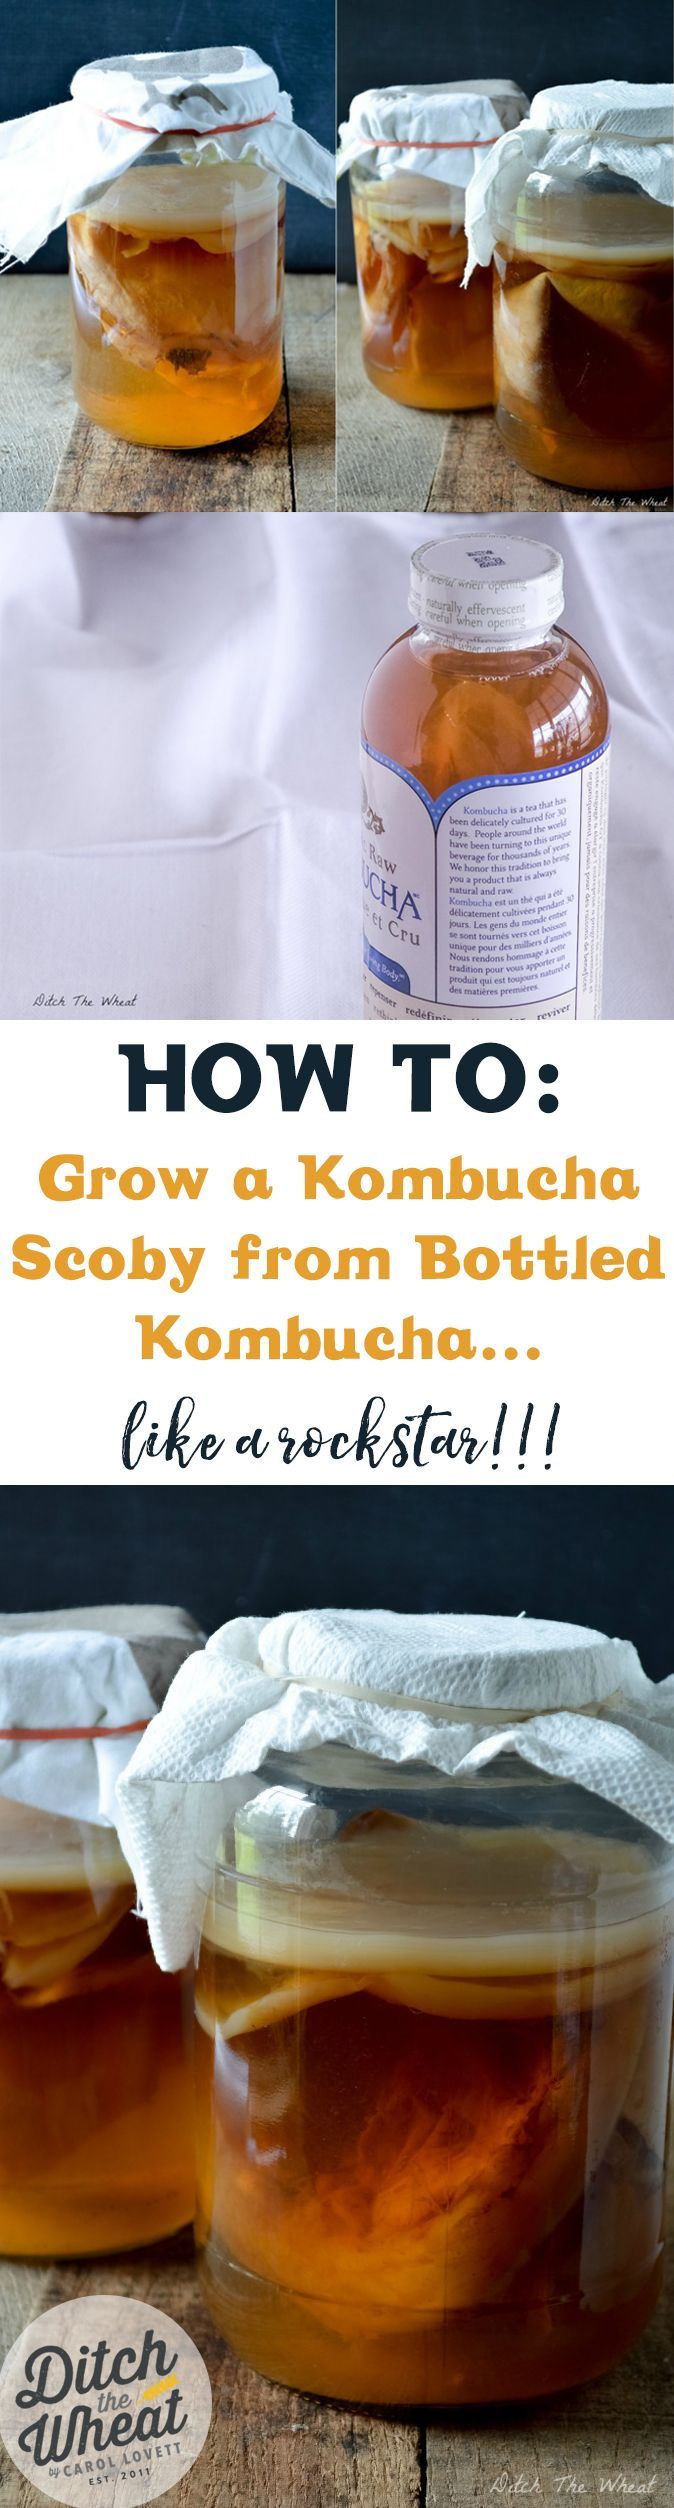 What are you waiting for?! Start making your own Kombucha